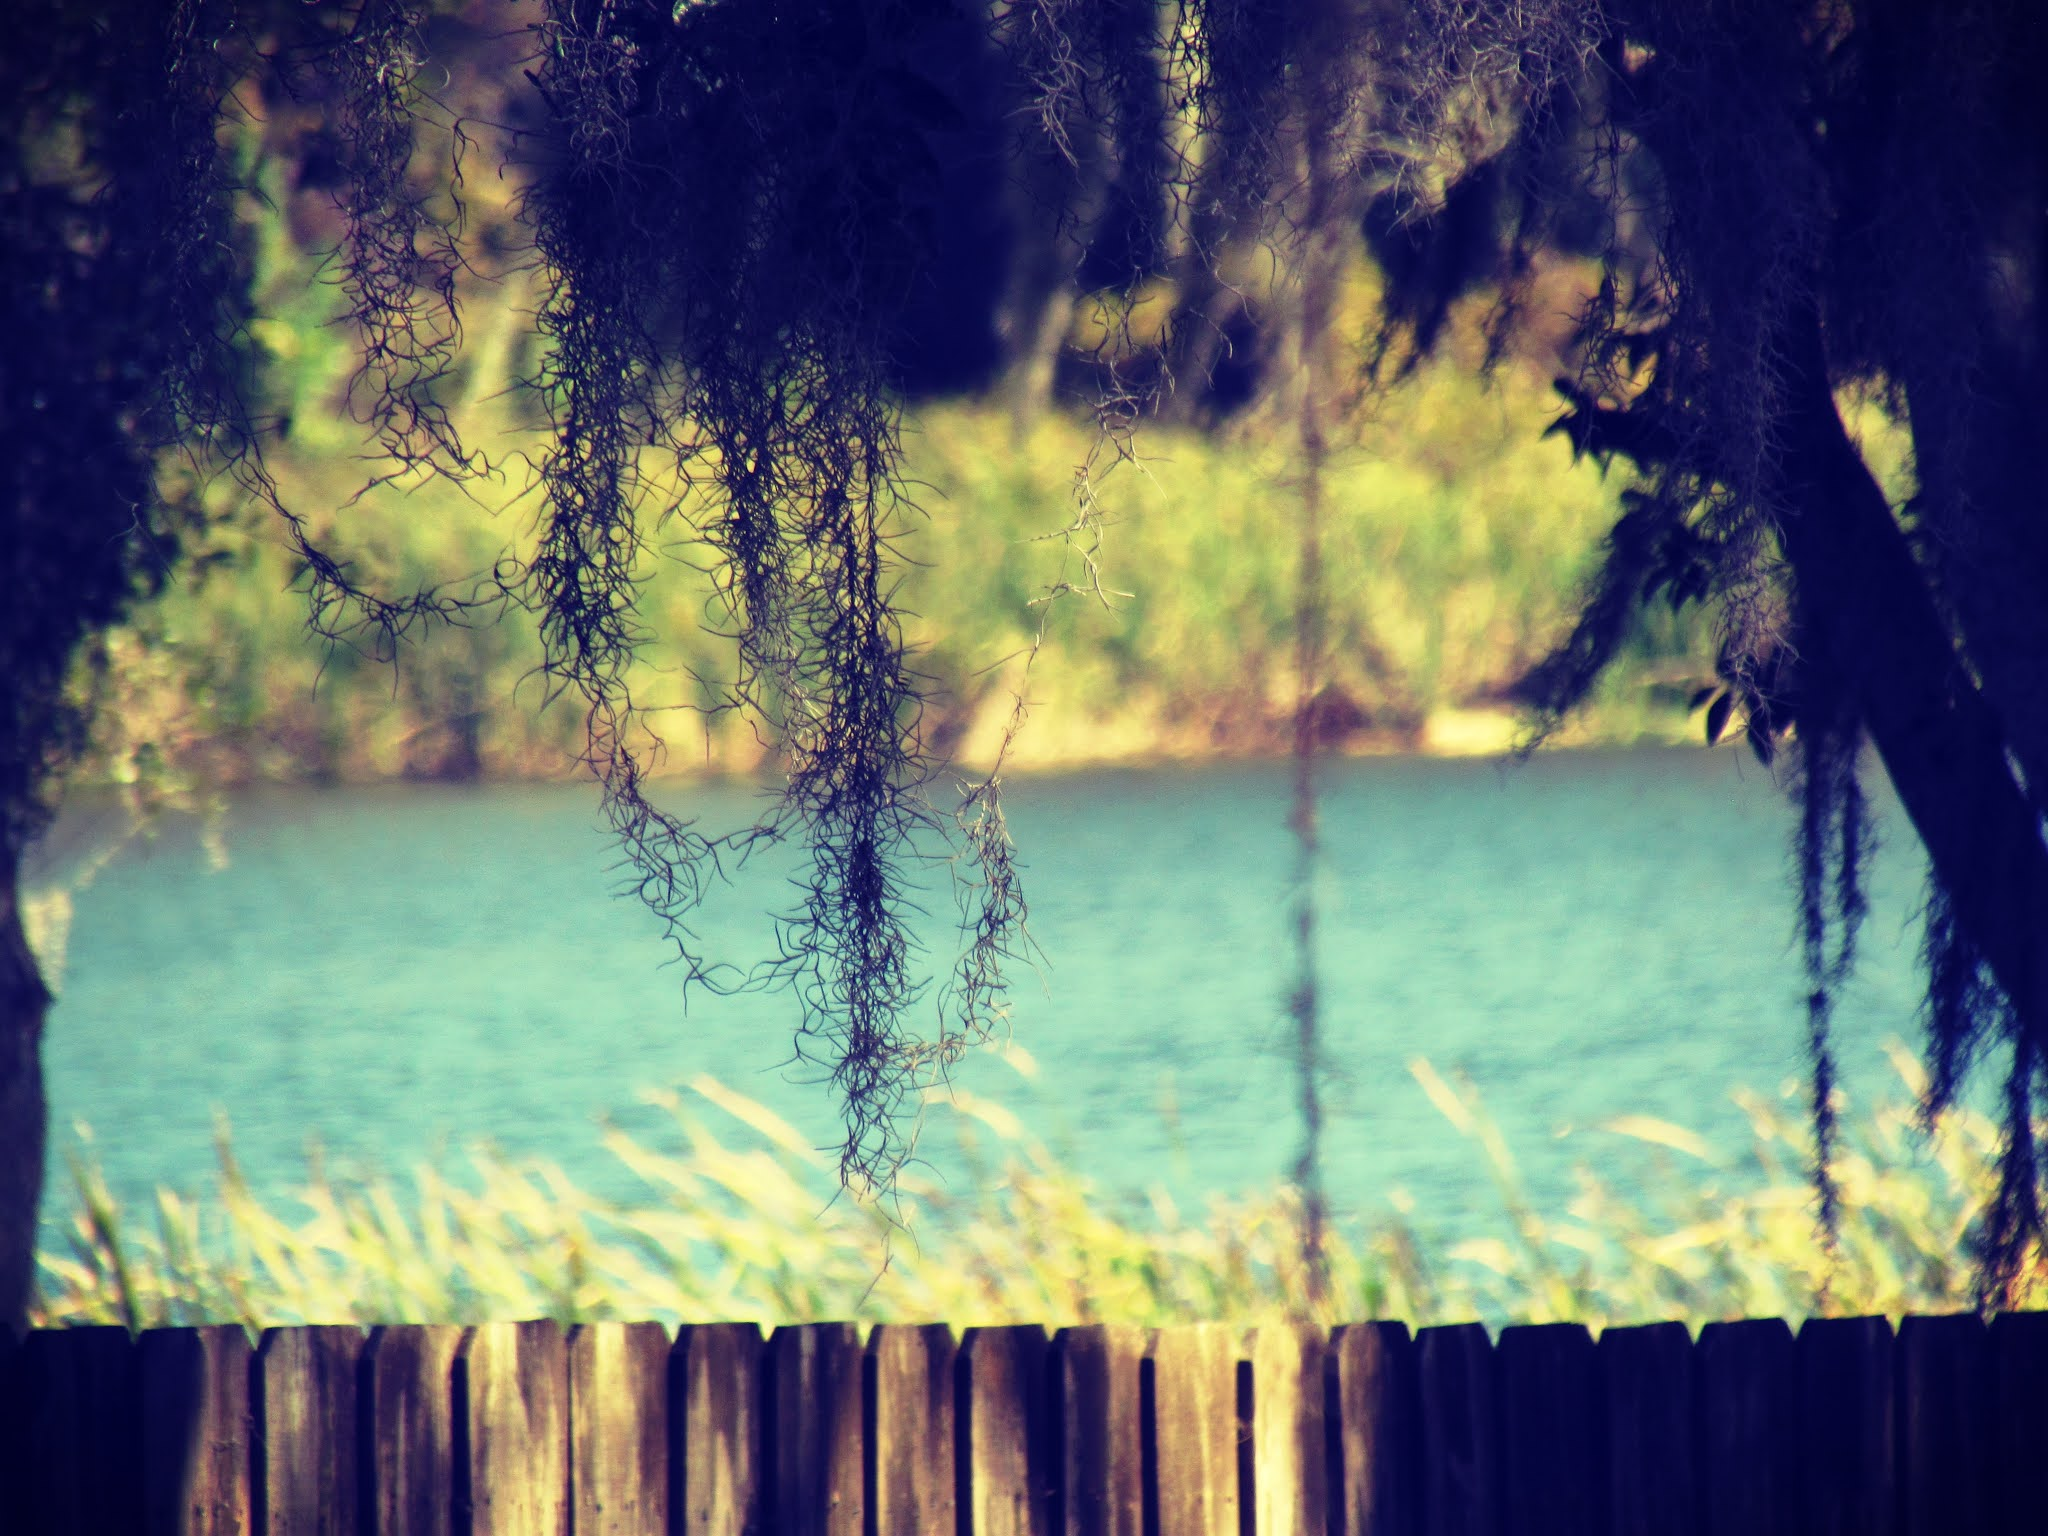 A picture perfect view of a freshwater lake in Florida with a wooden fence, tall grasses, blue calm waters, and Spanish moss hanging off of oak trees where the oak men live